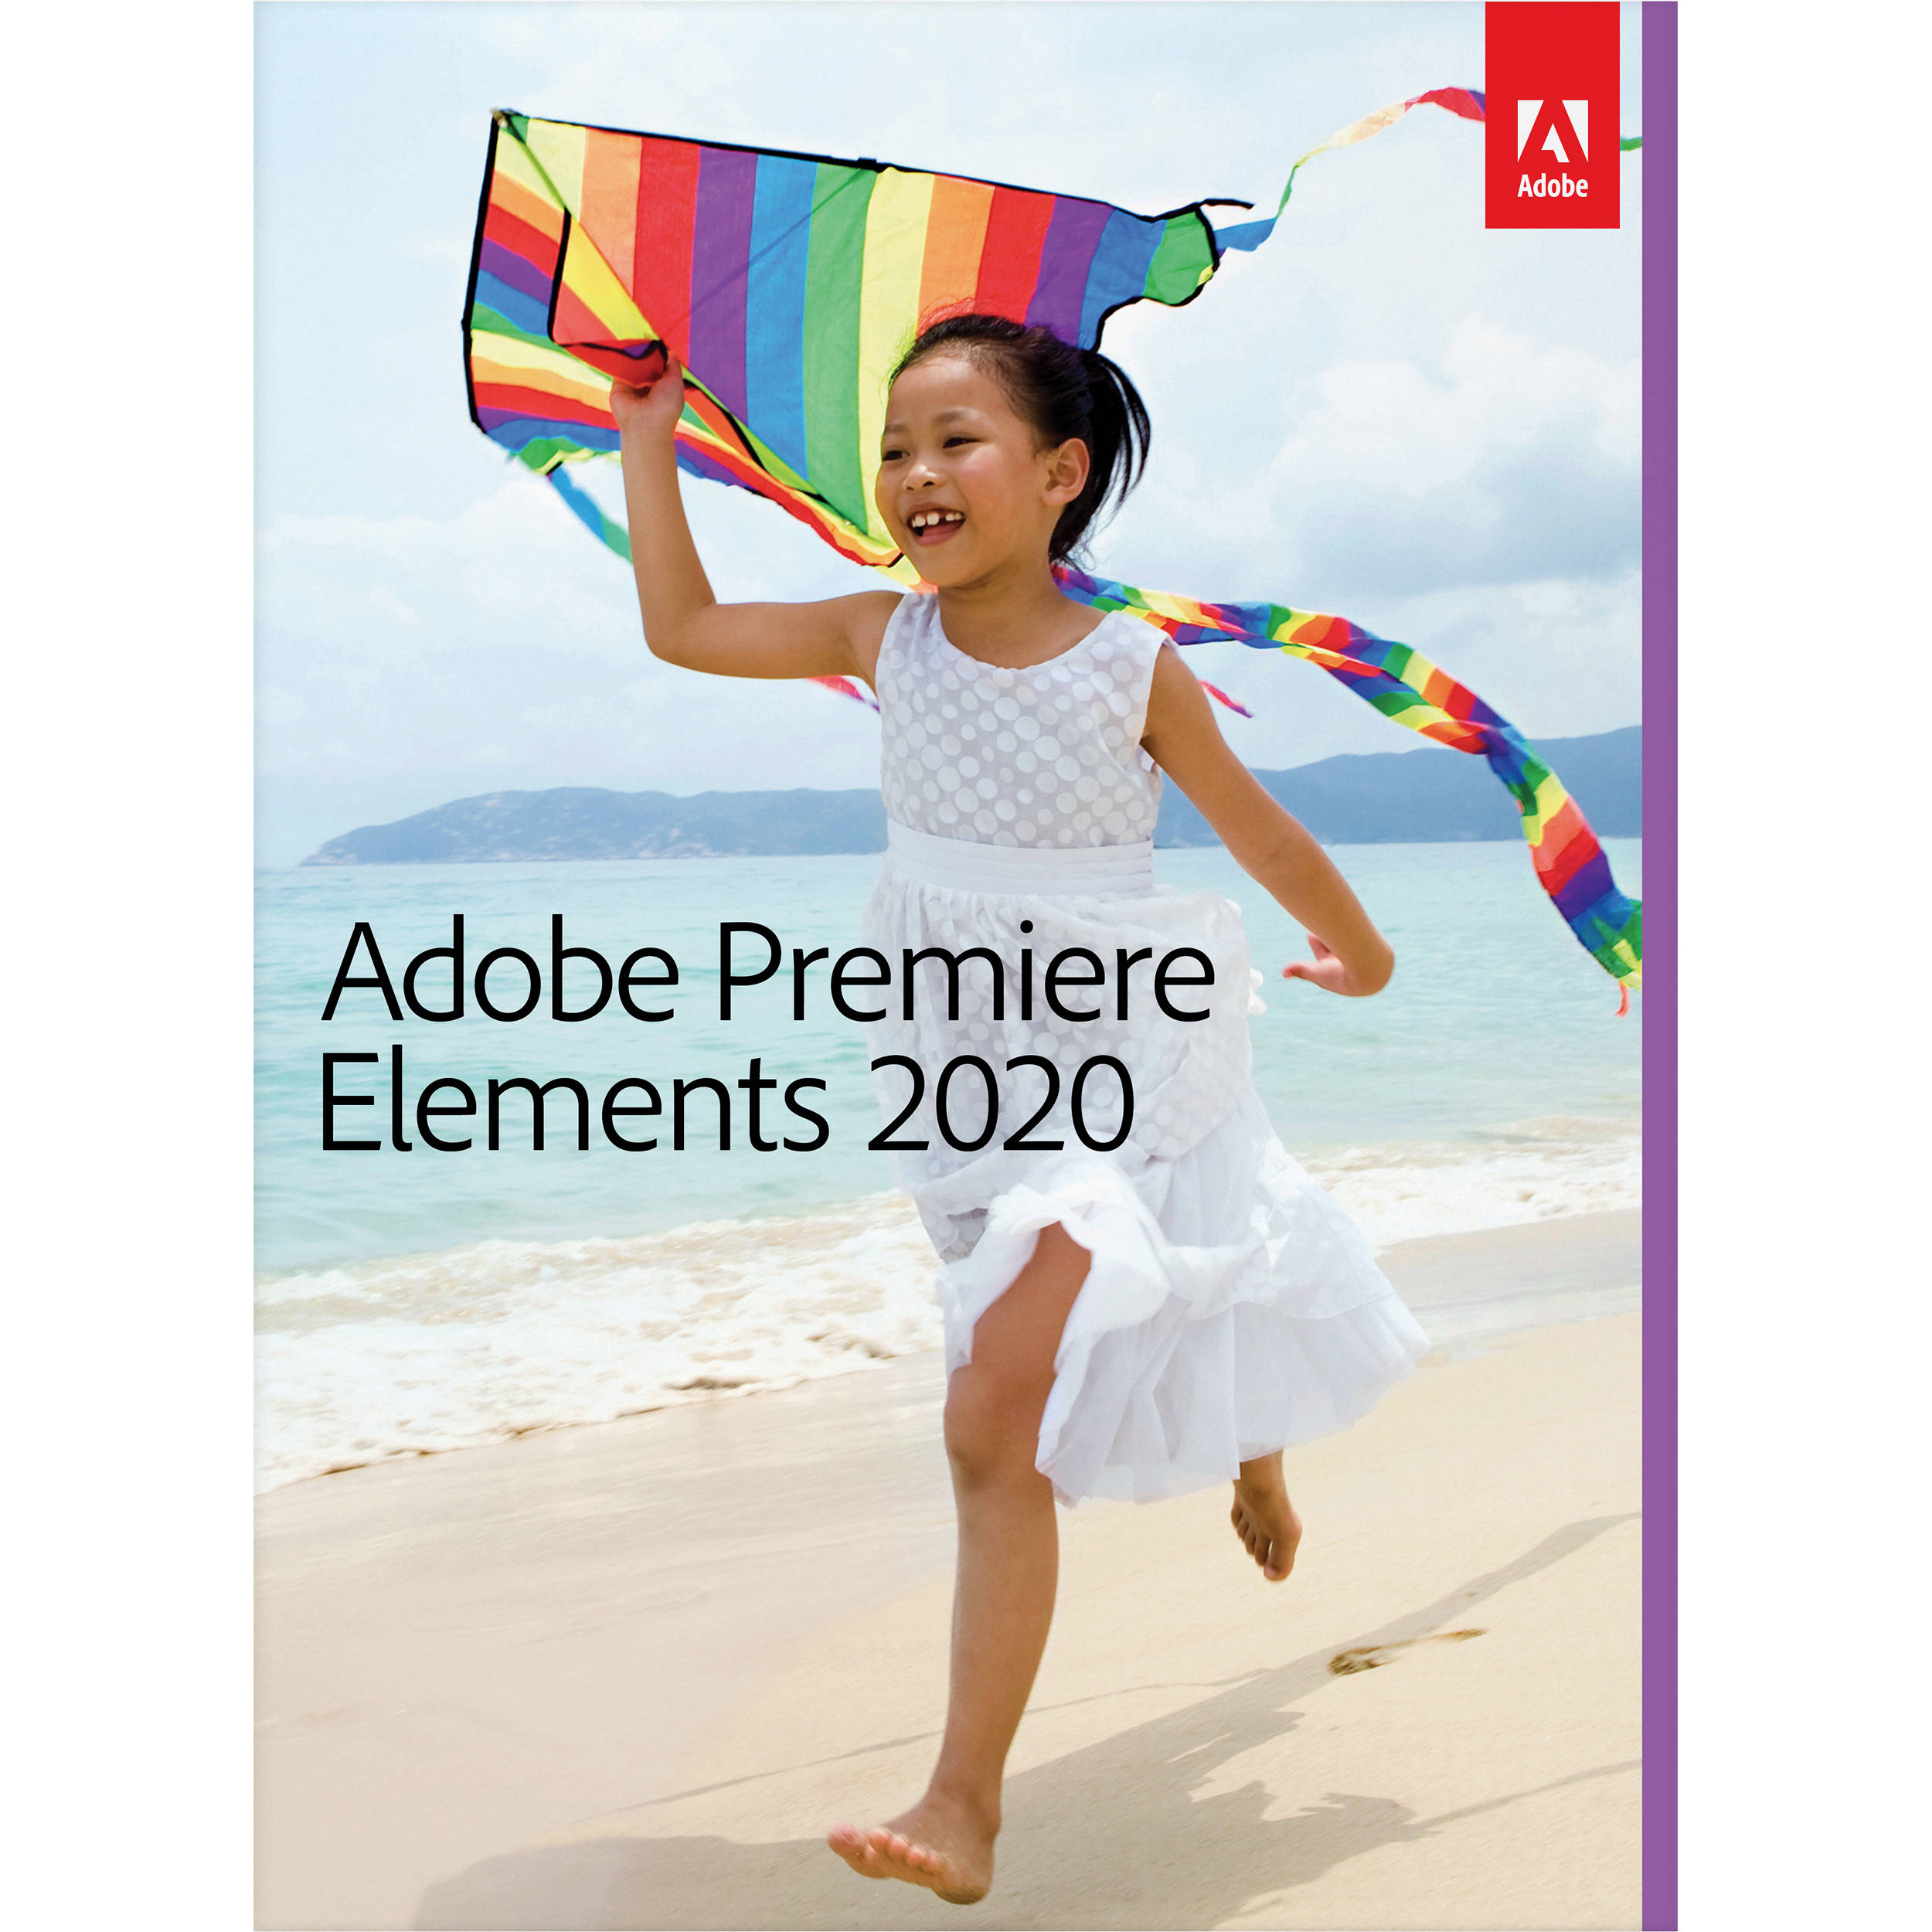 Adobe Premiere Elements 2020 Deal